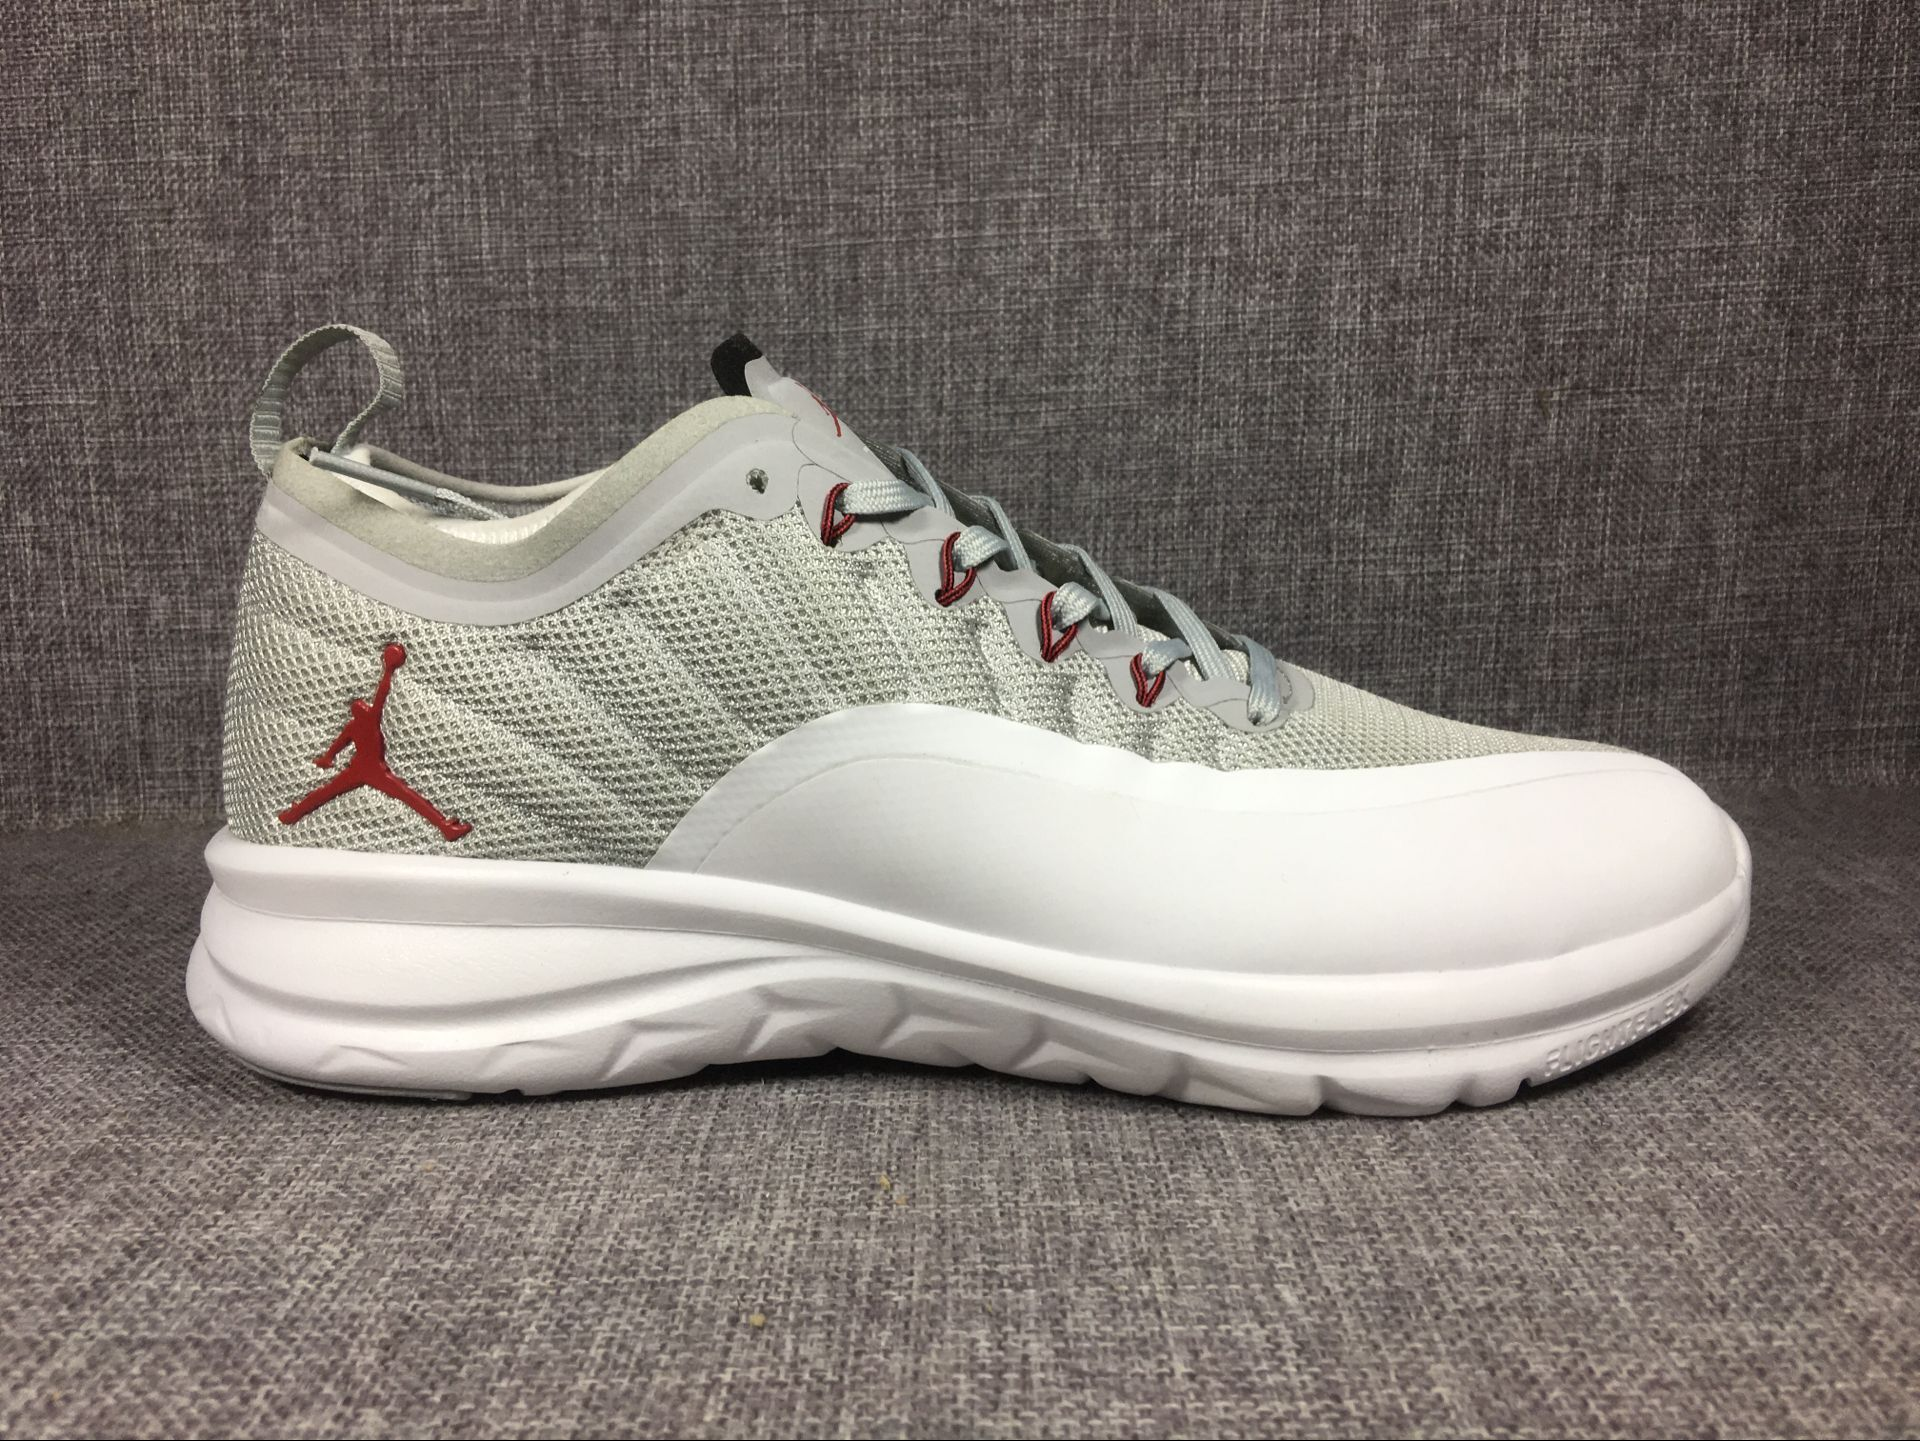 Air Jordan 12.5 Low Grey White Shoes